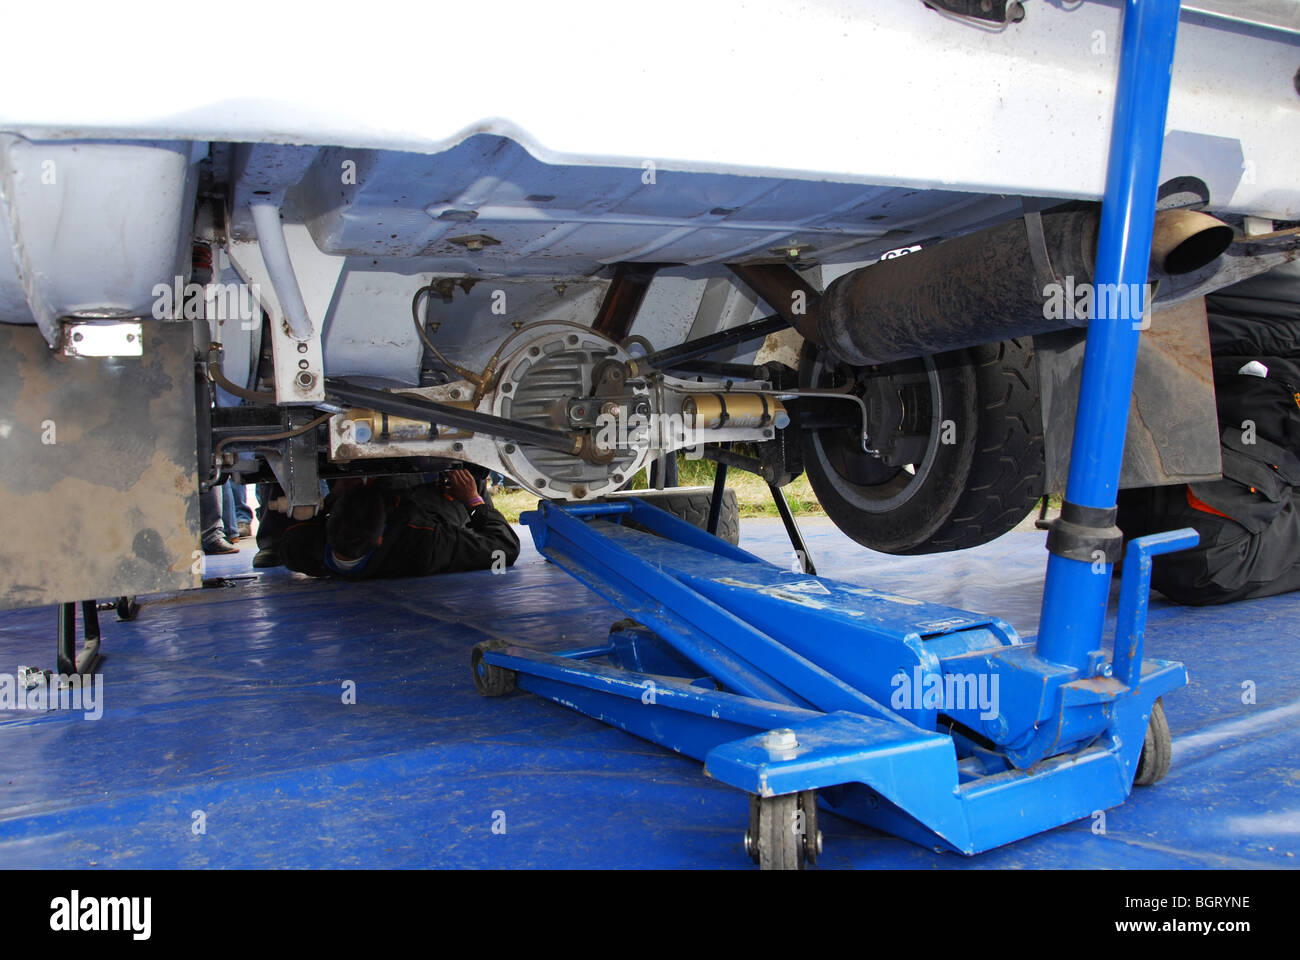 Watt's linkage on rear axle of Ford Escort Mk 1 BDA Stock Photo: 27571530 - Alamy